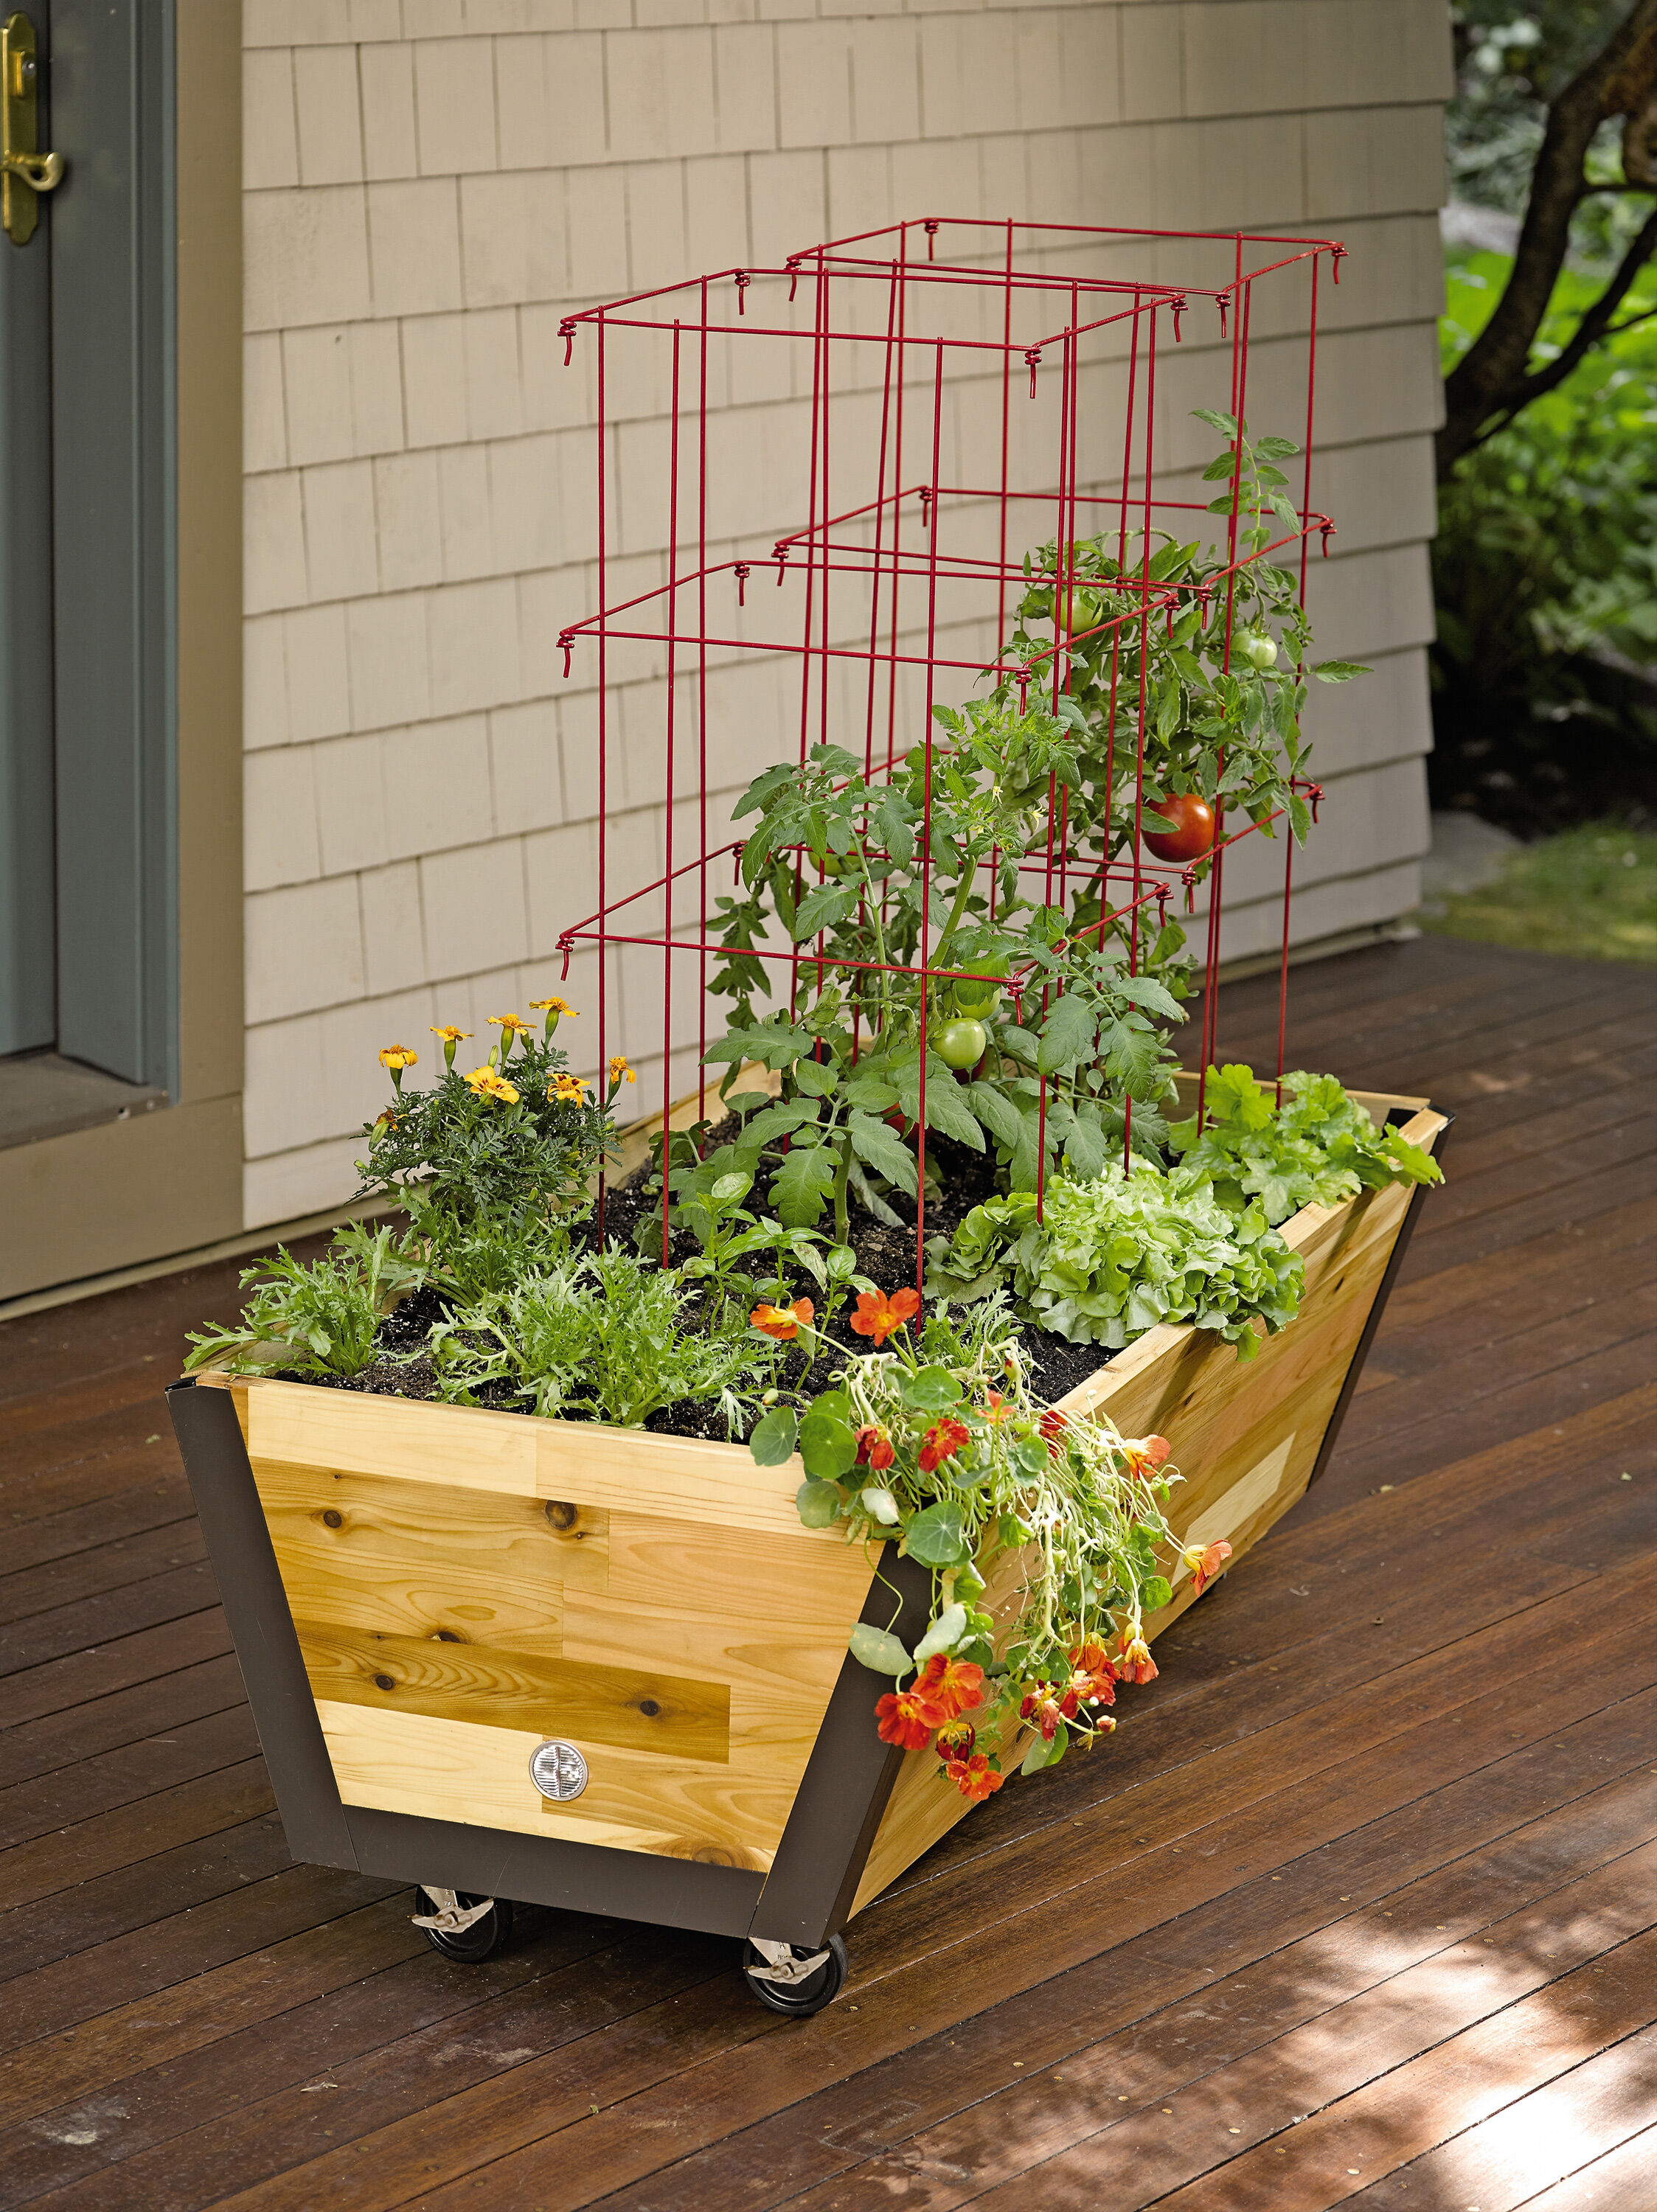 Rolling Planter Box U-garden Bed Wheels